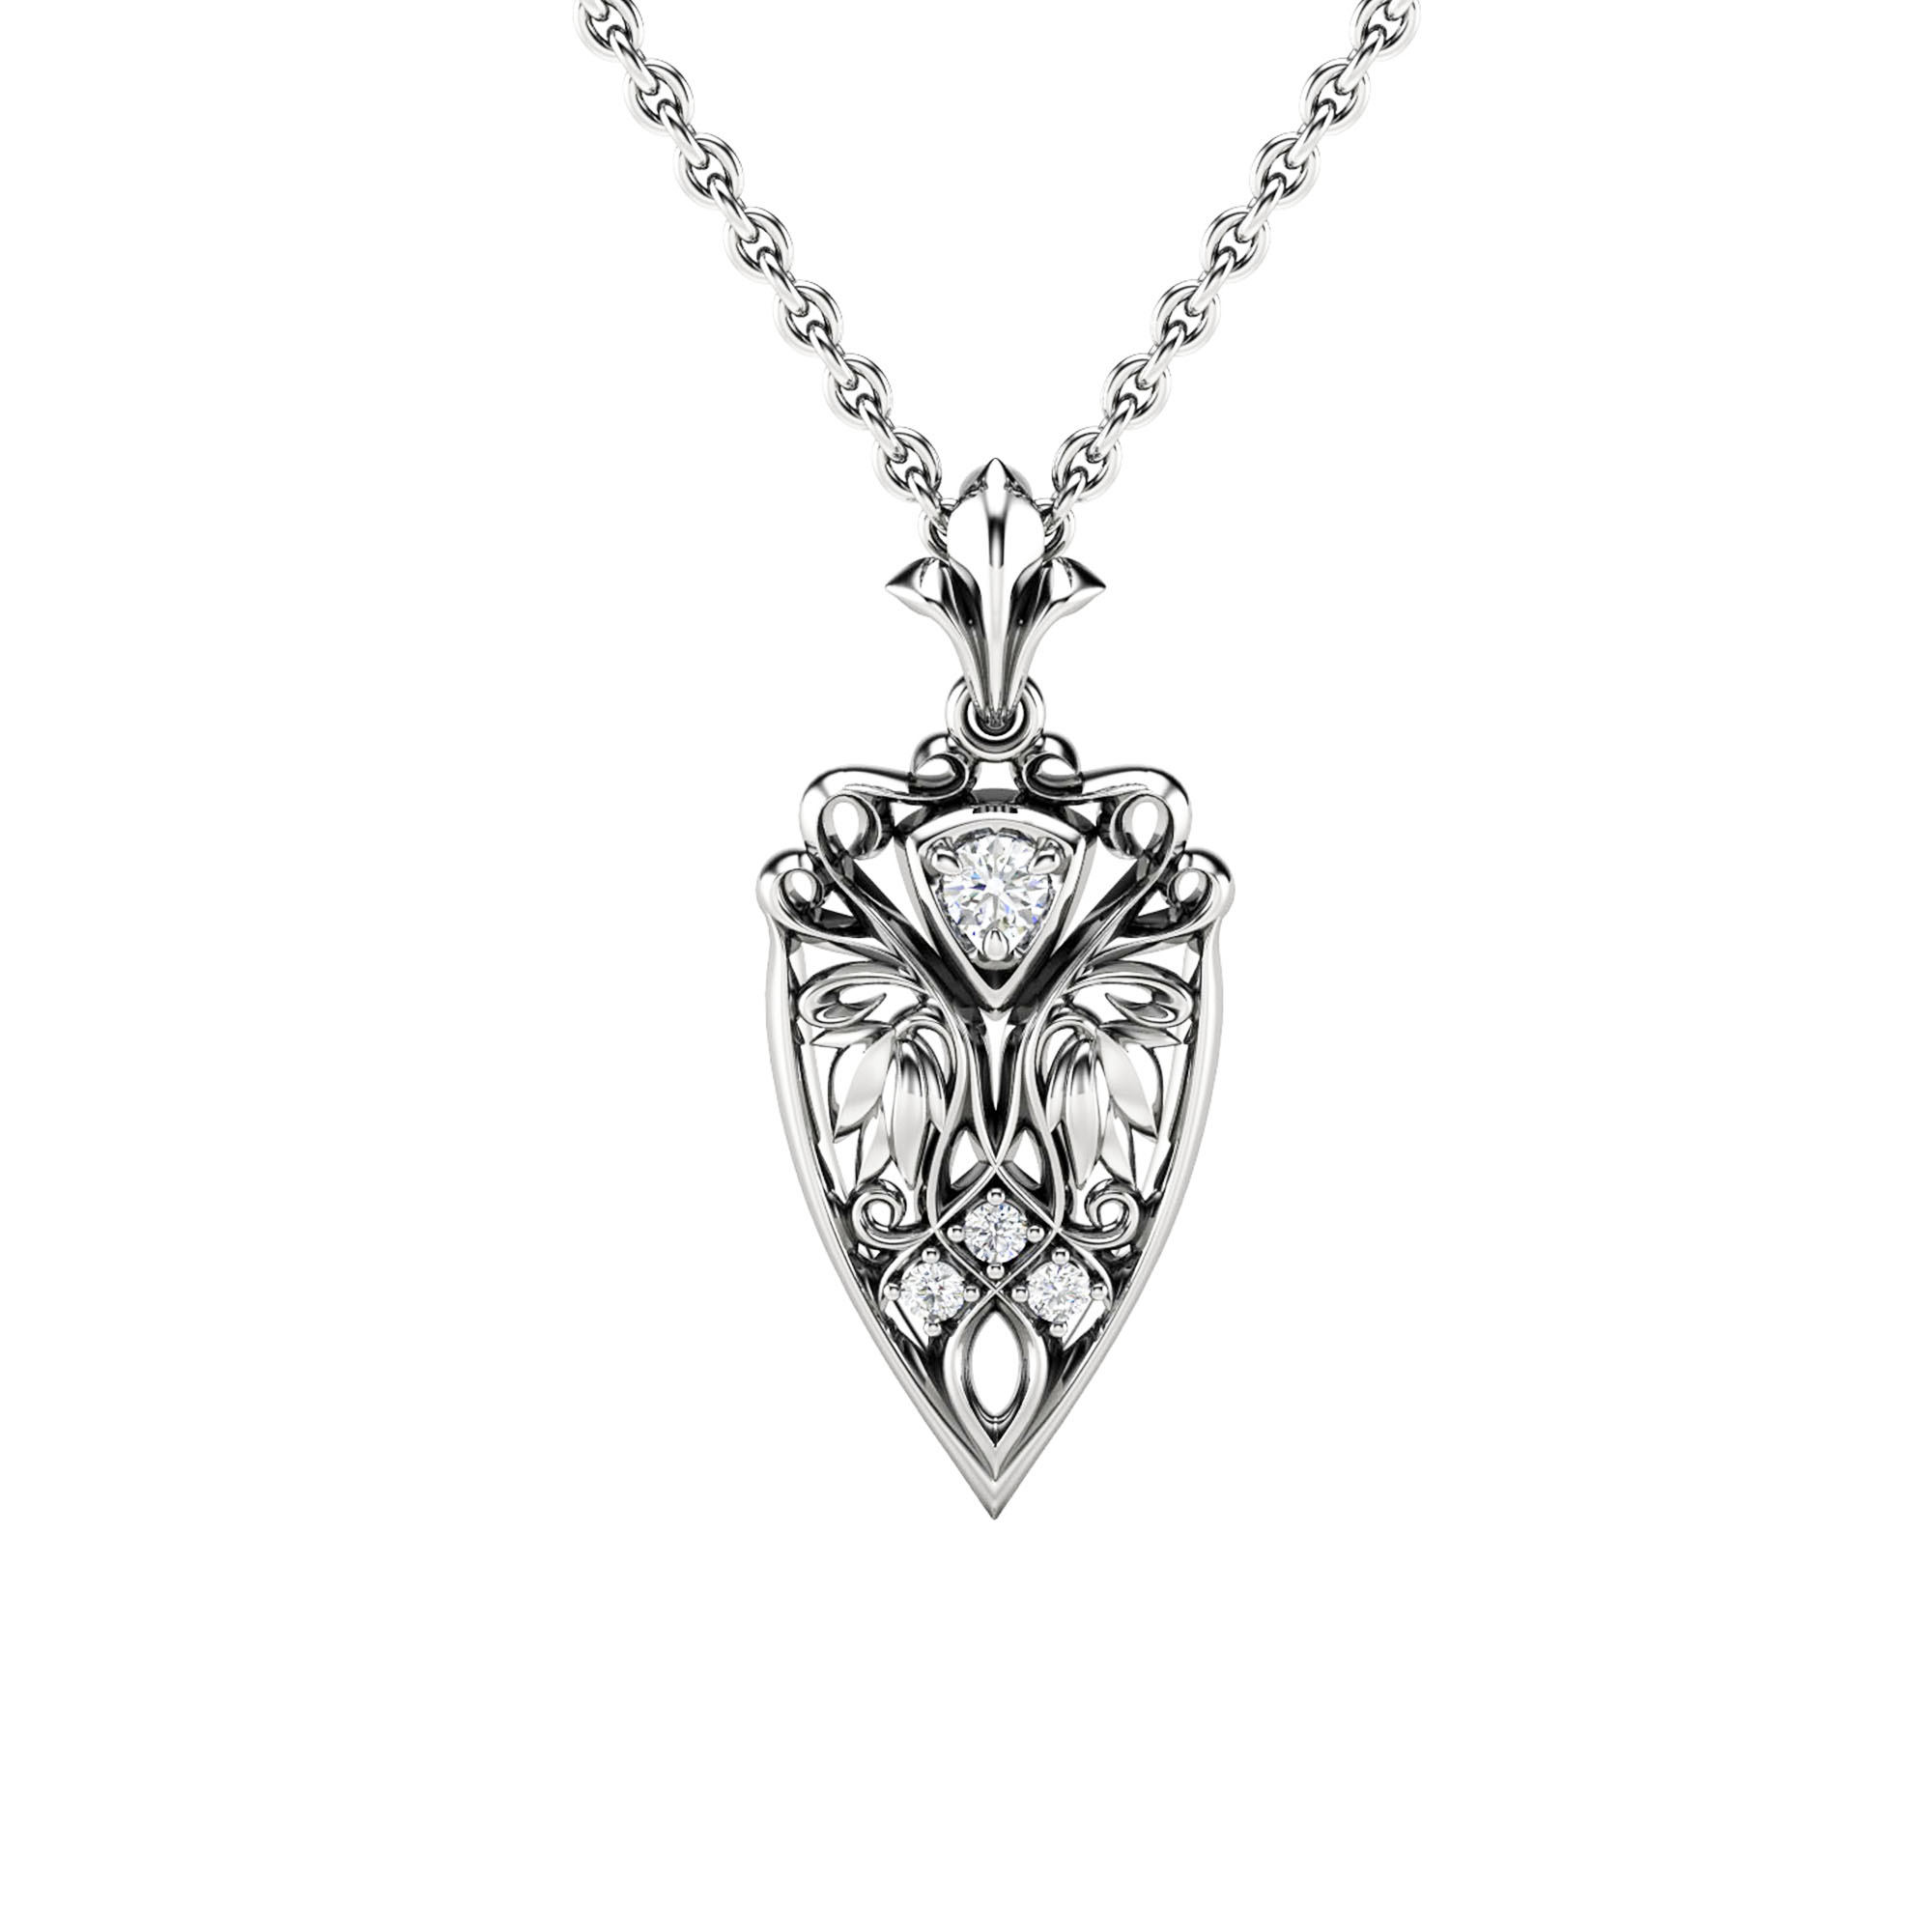 Art Nouveau Diamond Pendant Edwardian 14K White Gold Pendant Necklace Valentine's Day Gift Leaves Pendant